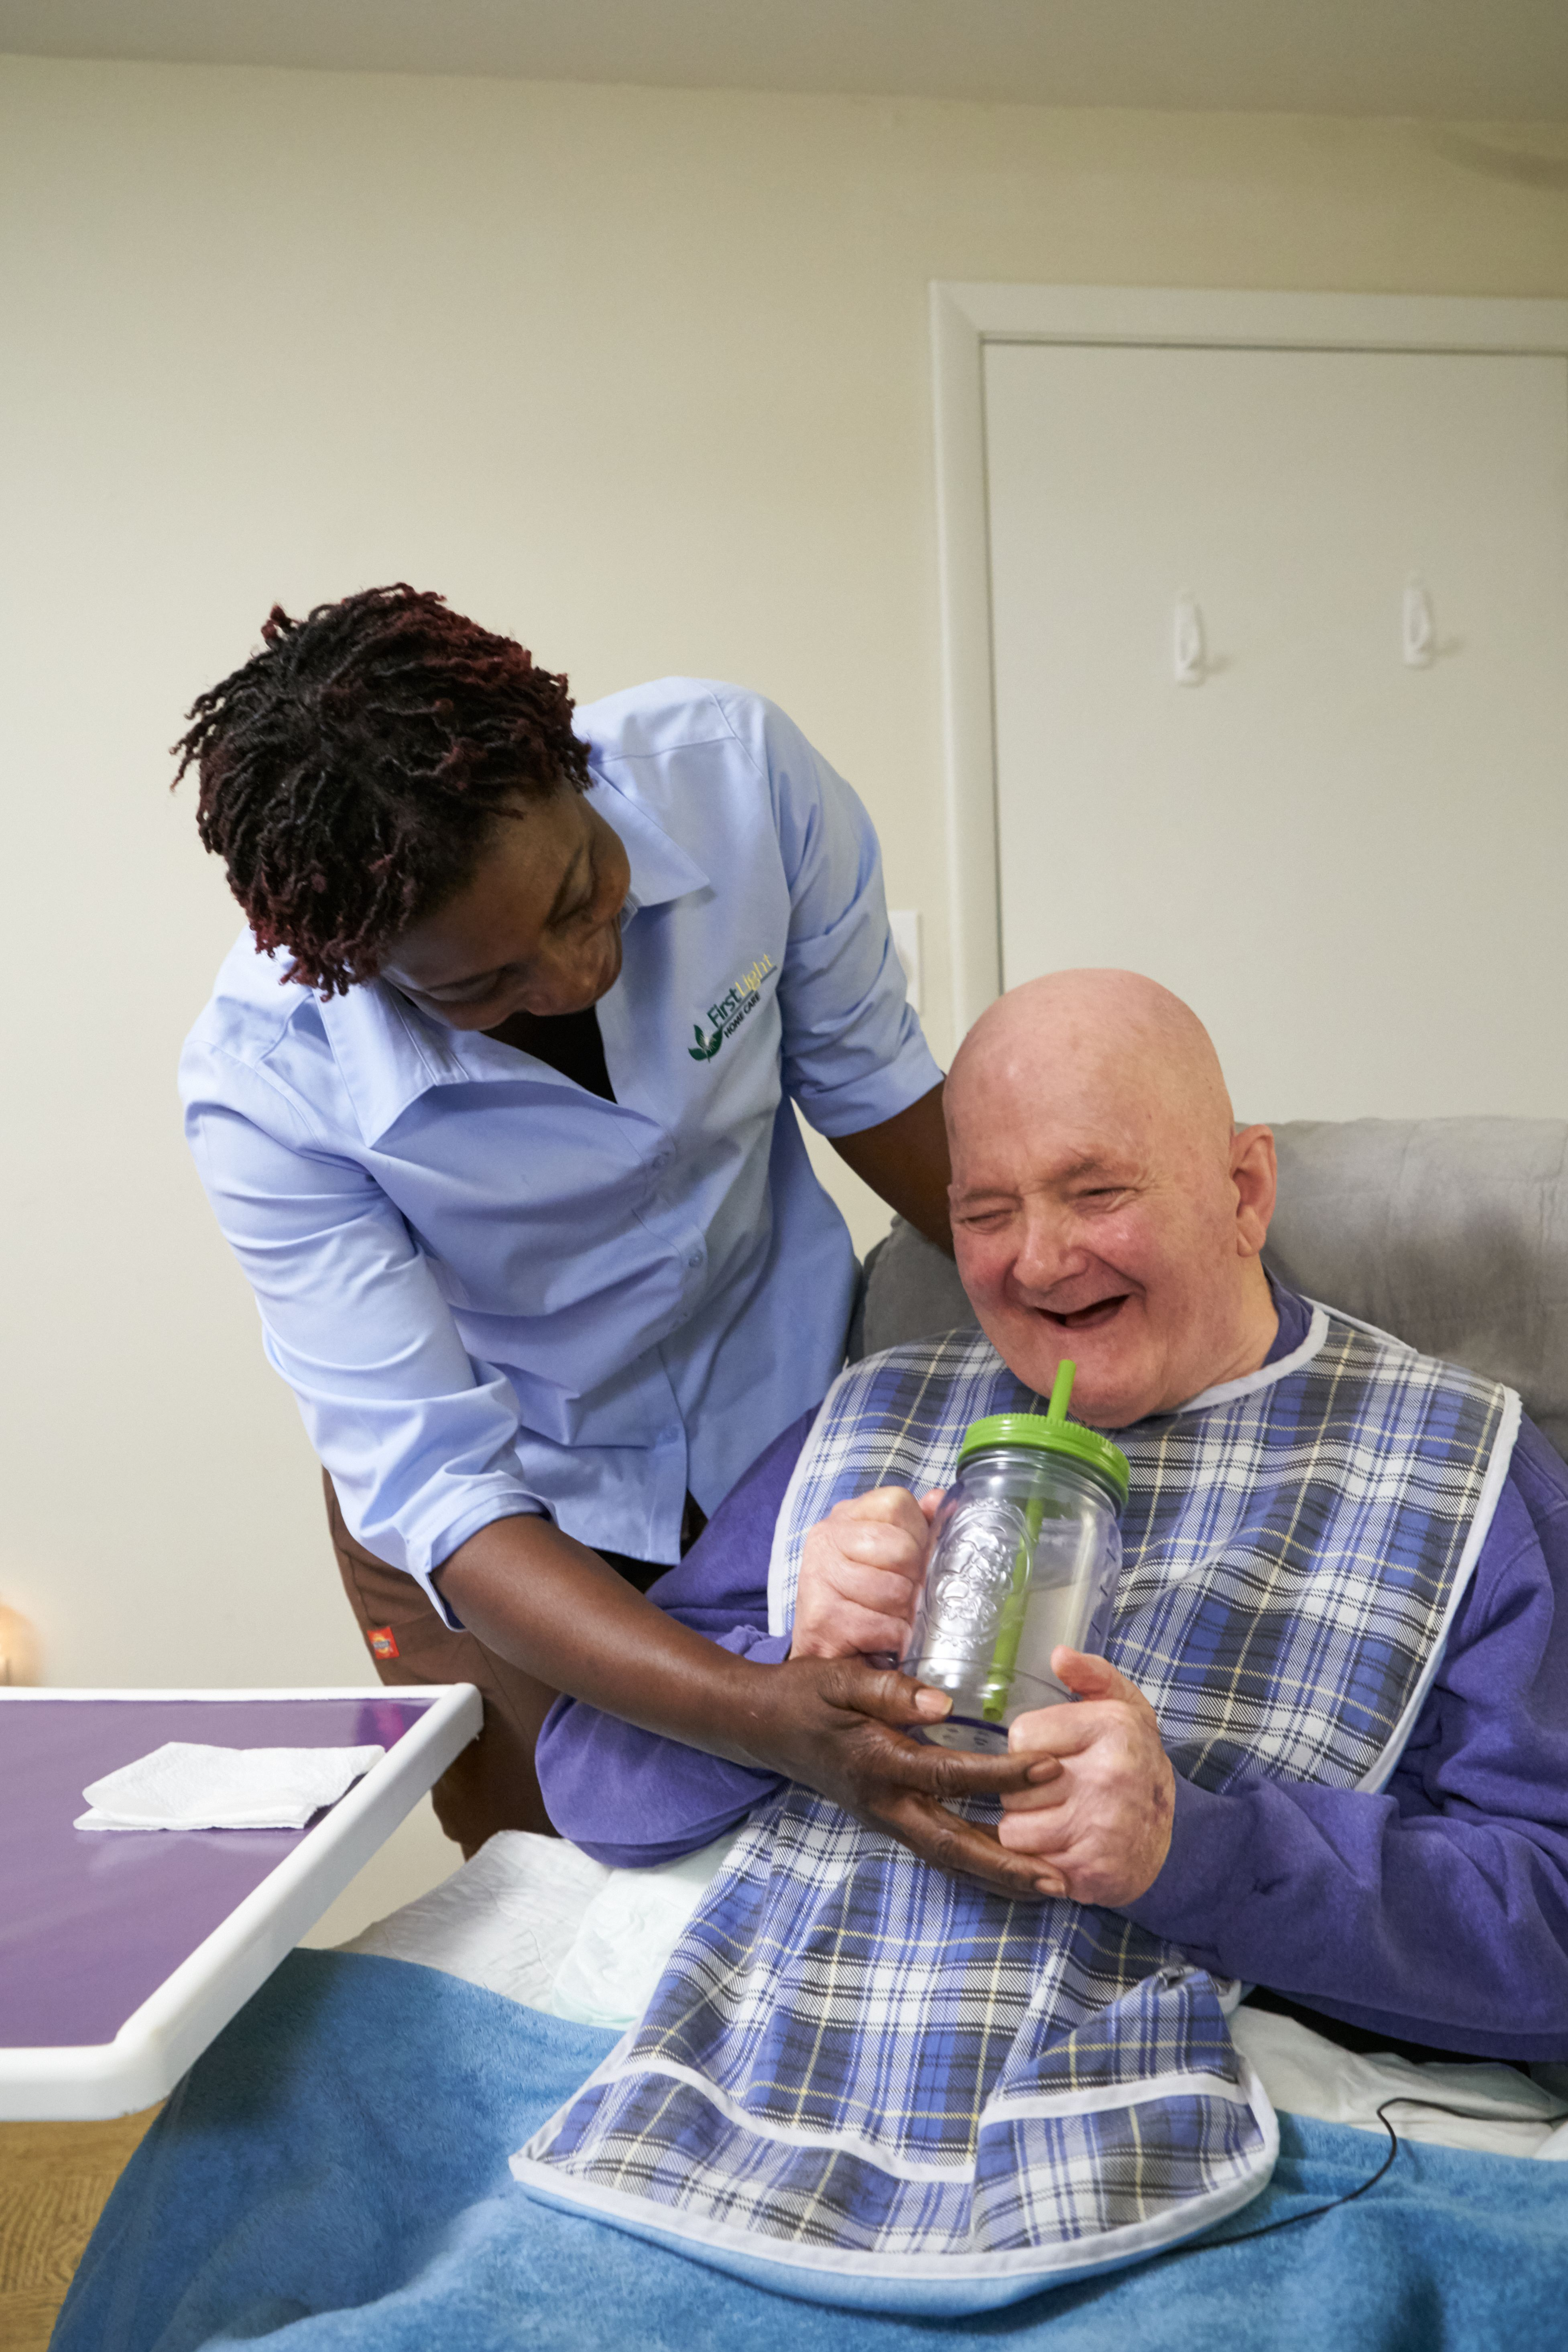 Personal Care Aid Services for Elderly Personal care